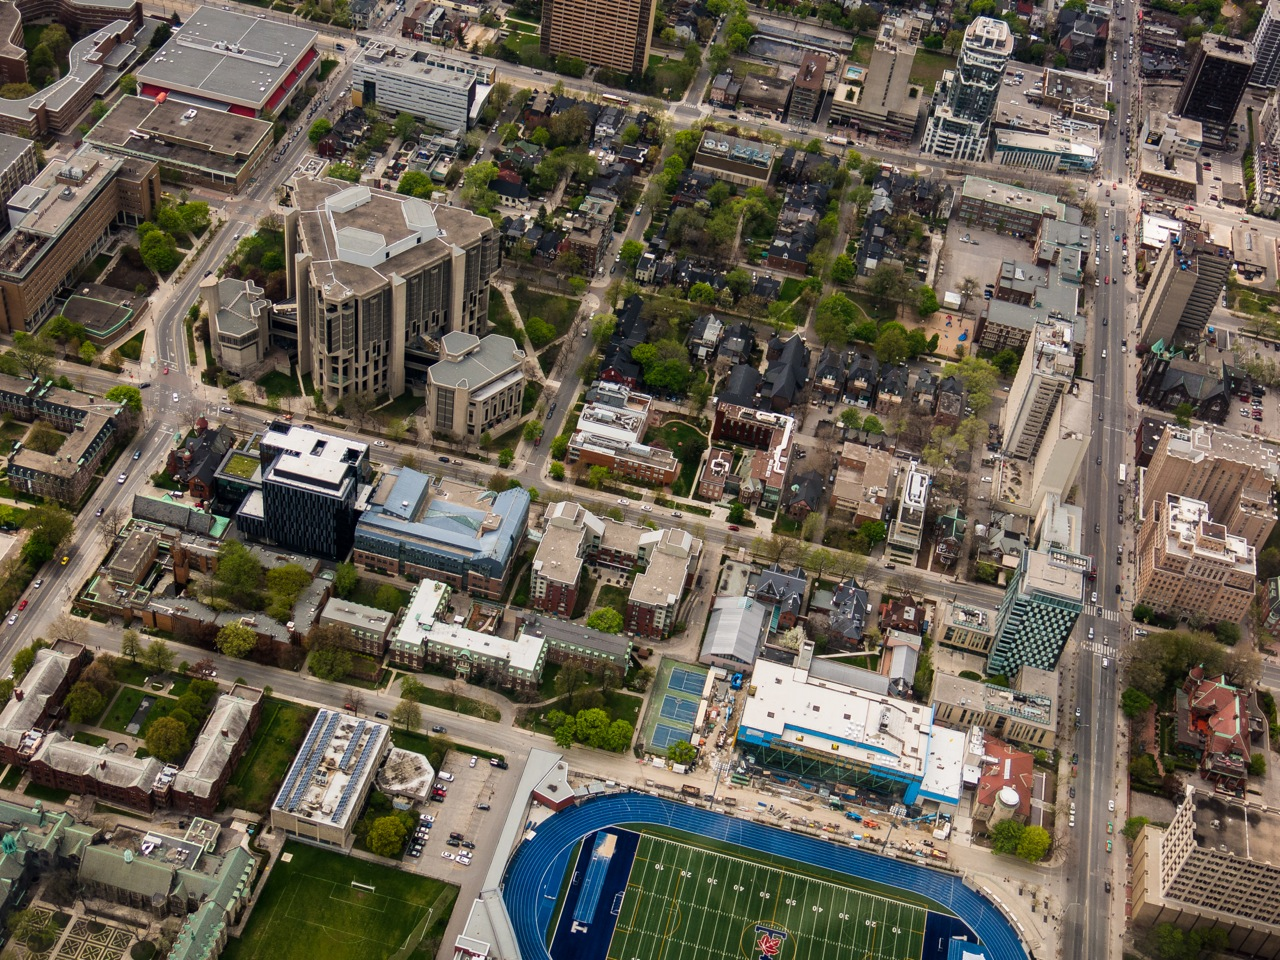 Aerial view of Robarts Library and surrounding Campus